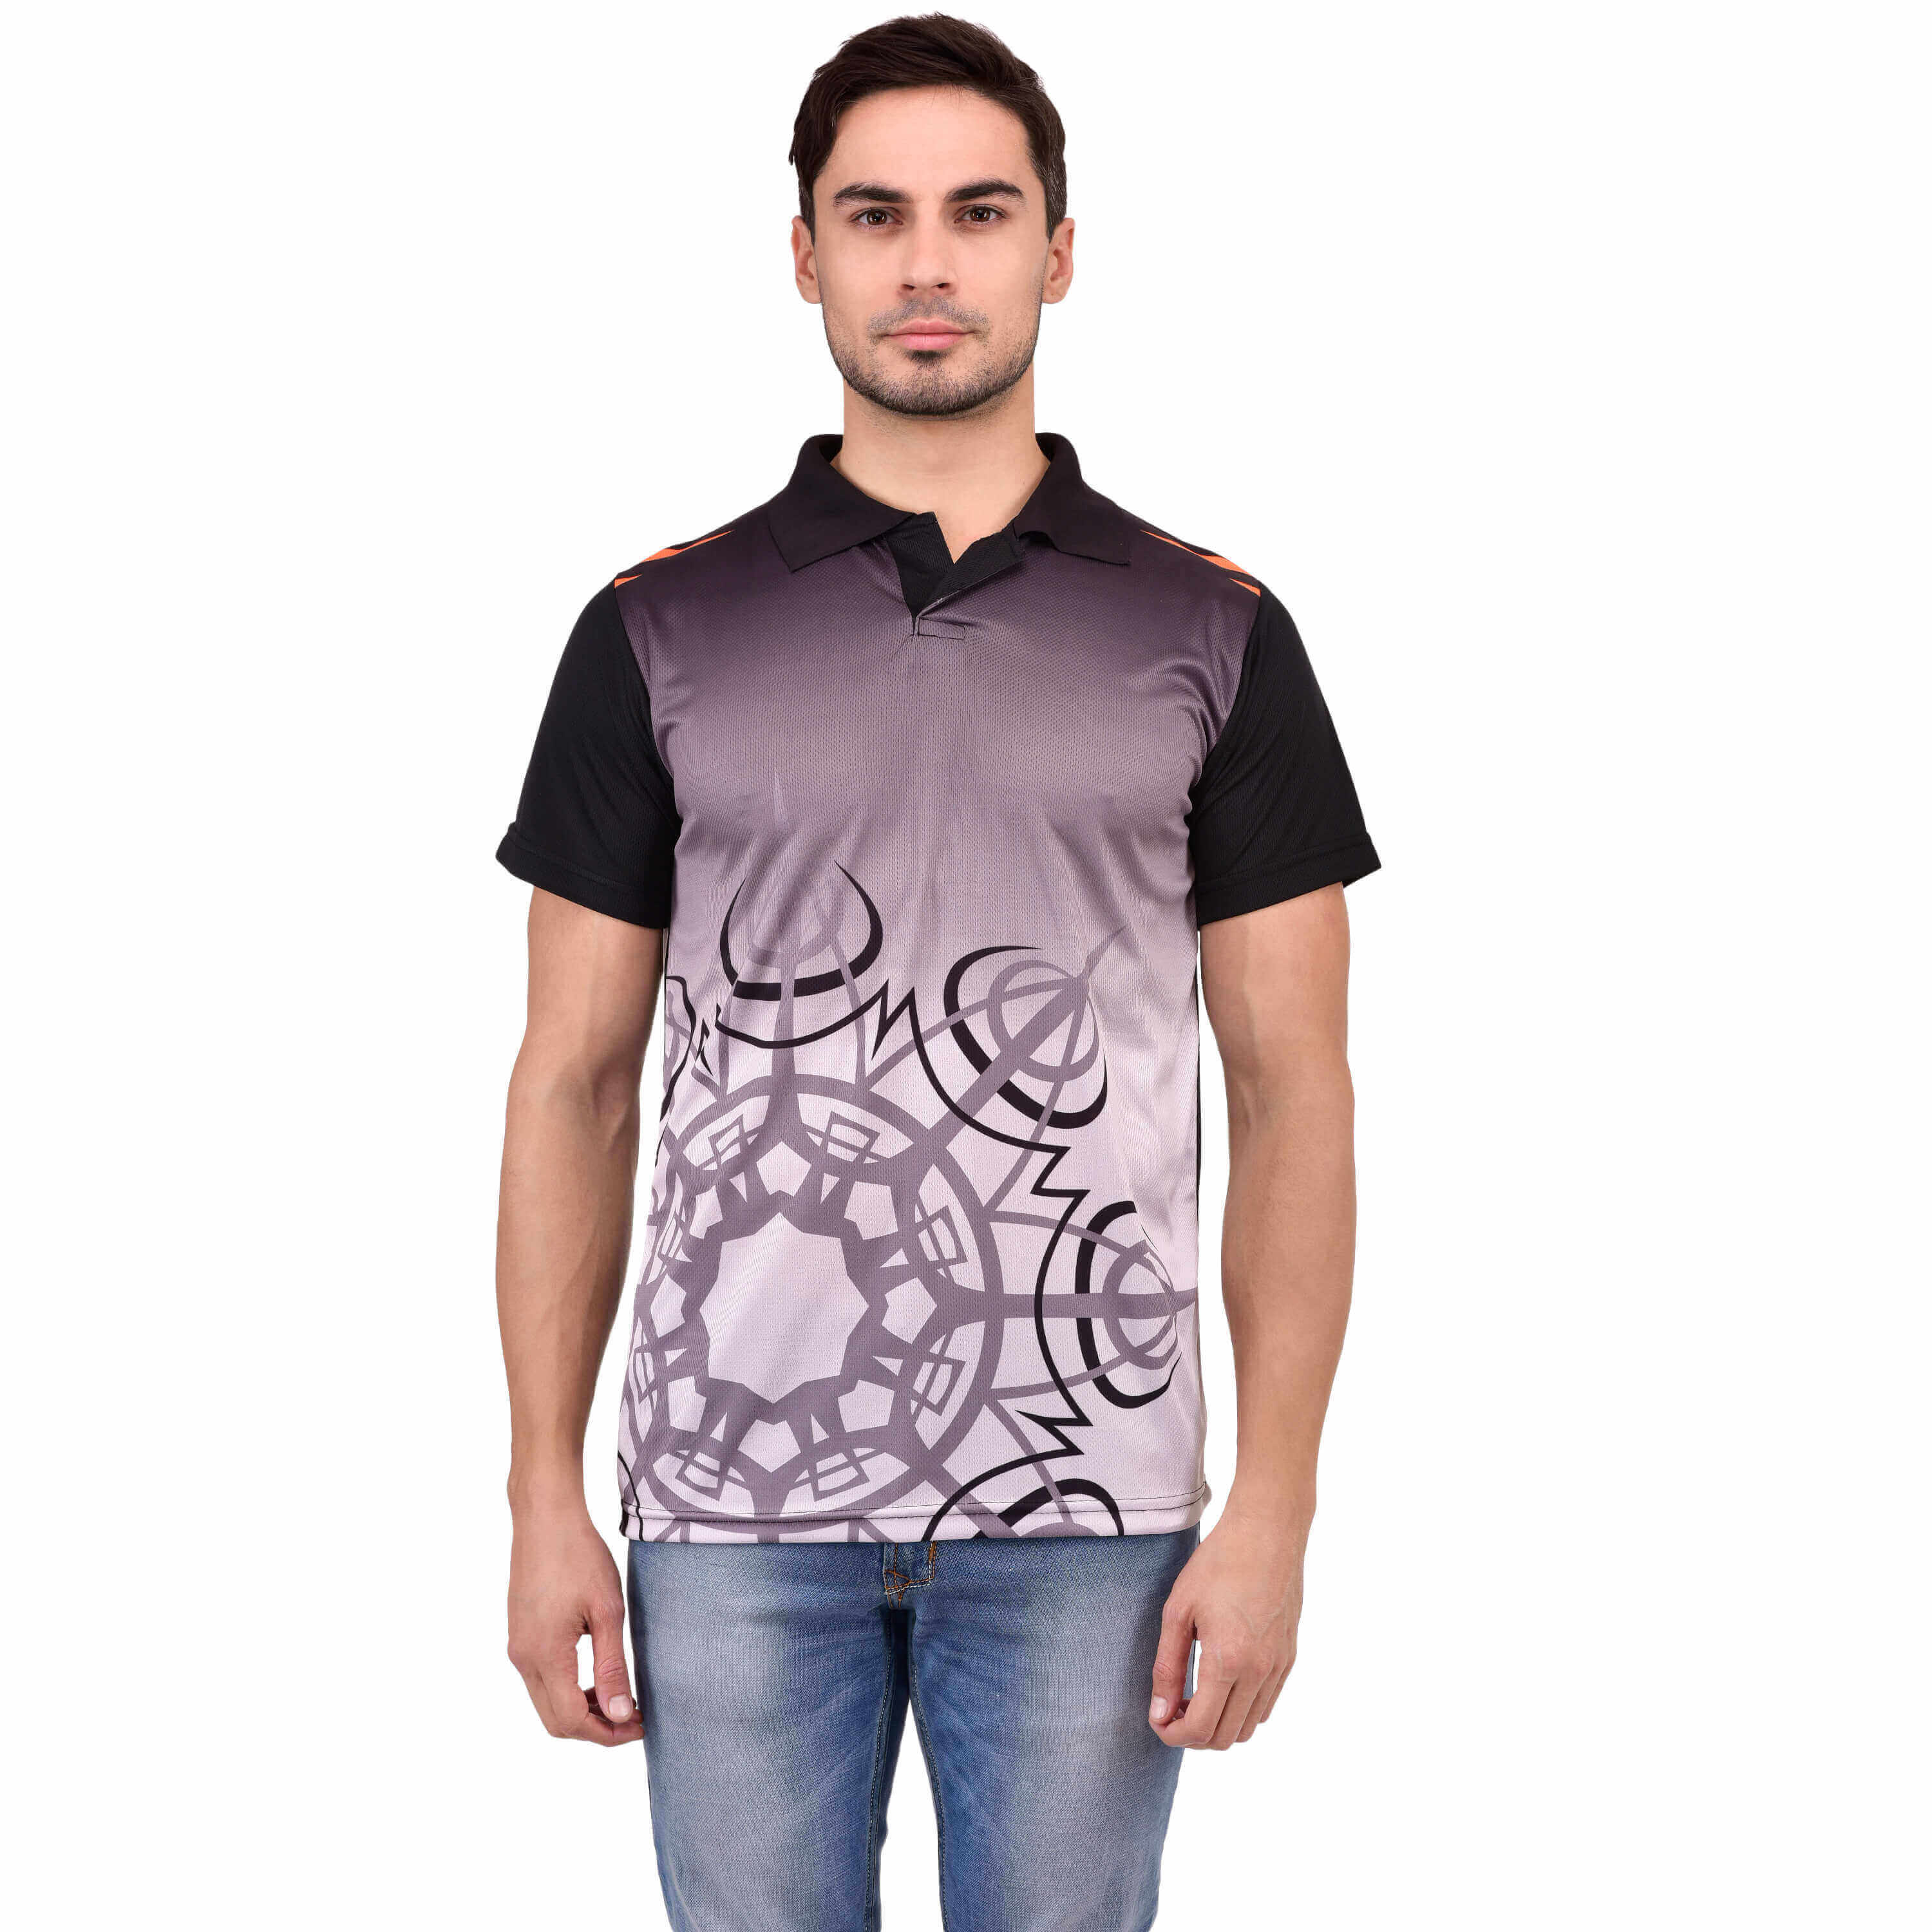 Cheap T Shirts Manufacturers in Nanded